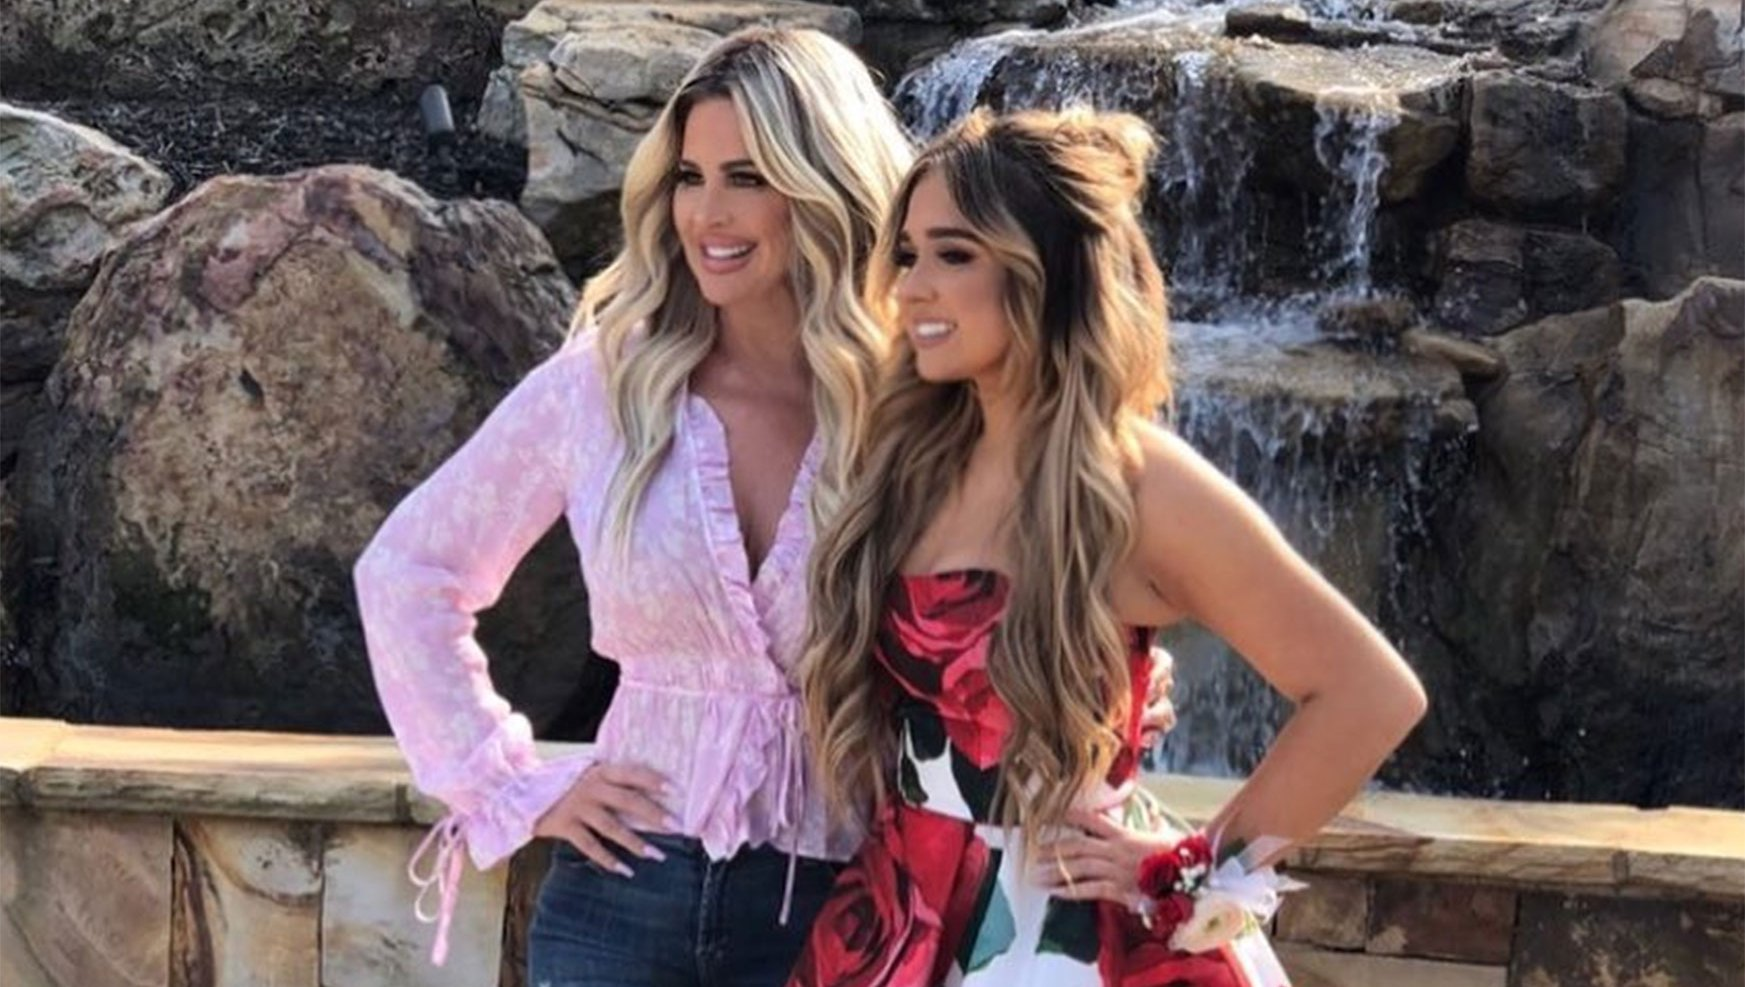 Kim Zolciak Admits She 'Paid for a Stomach' as Daughter Ariana Biermann Struggles With Insecurities